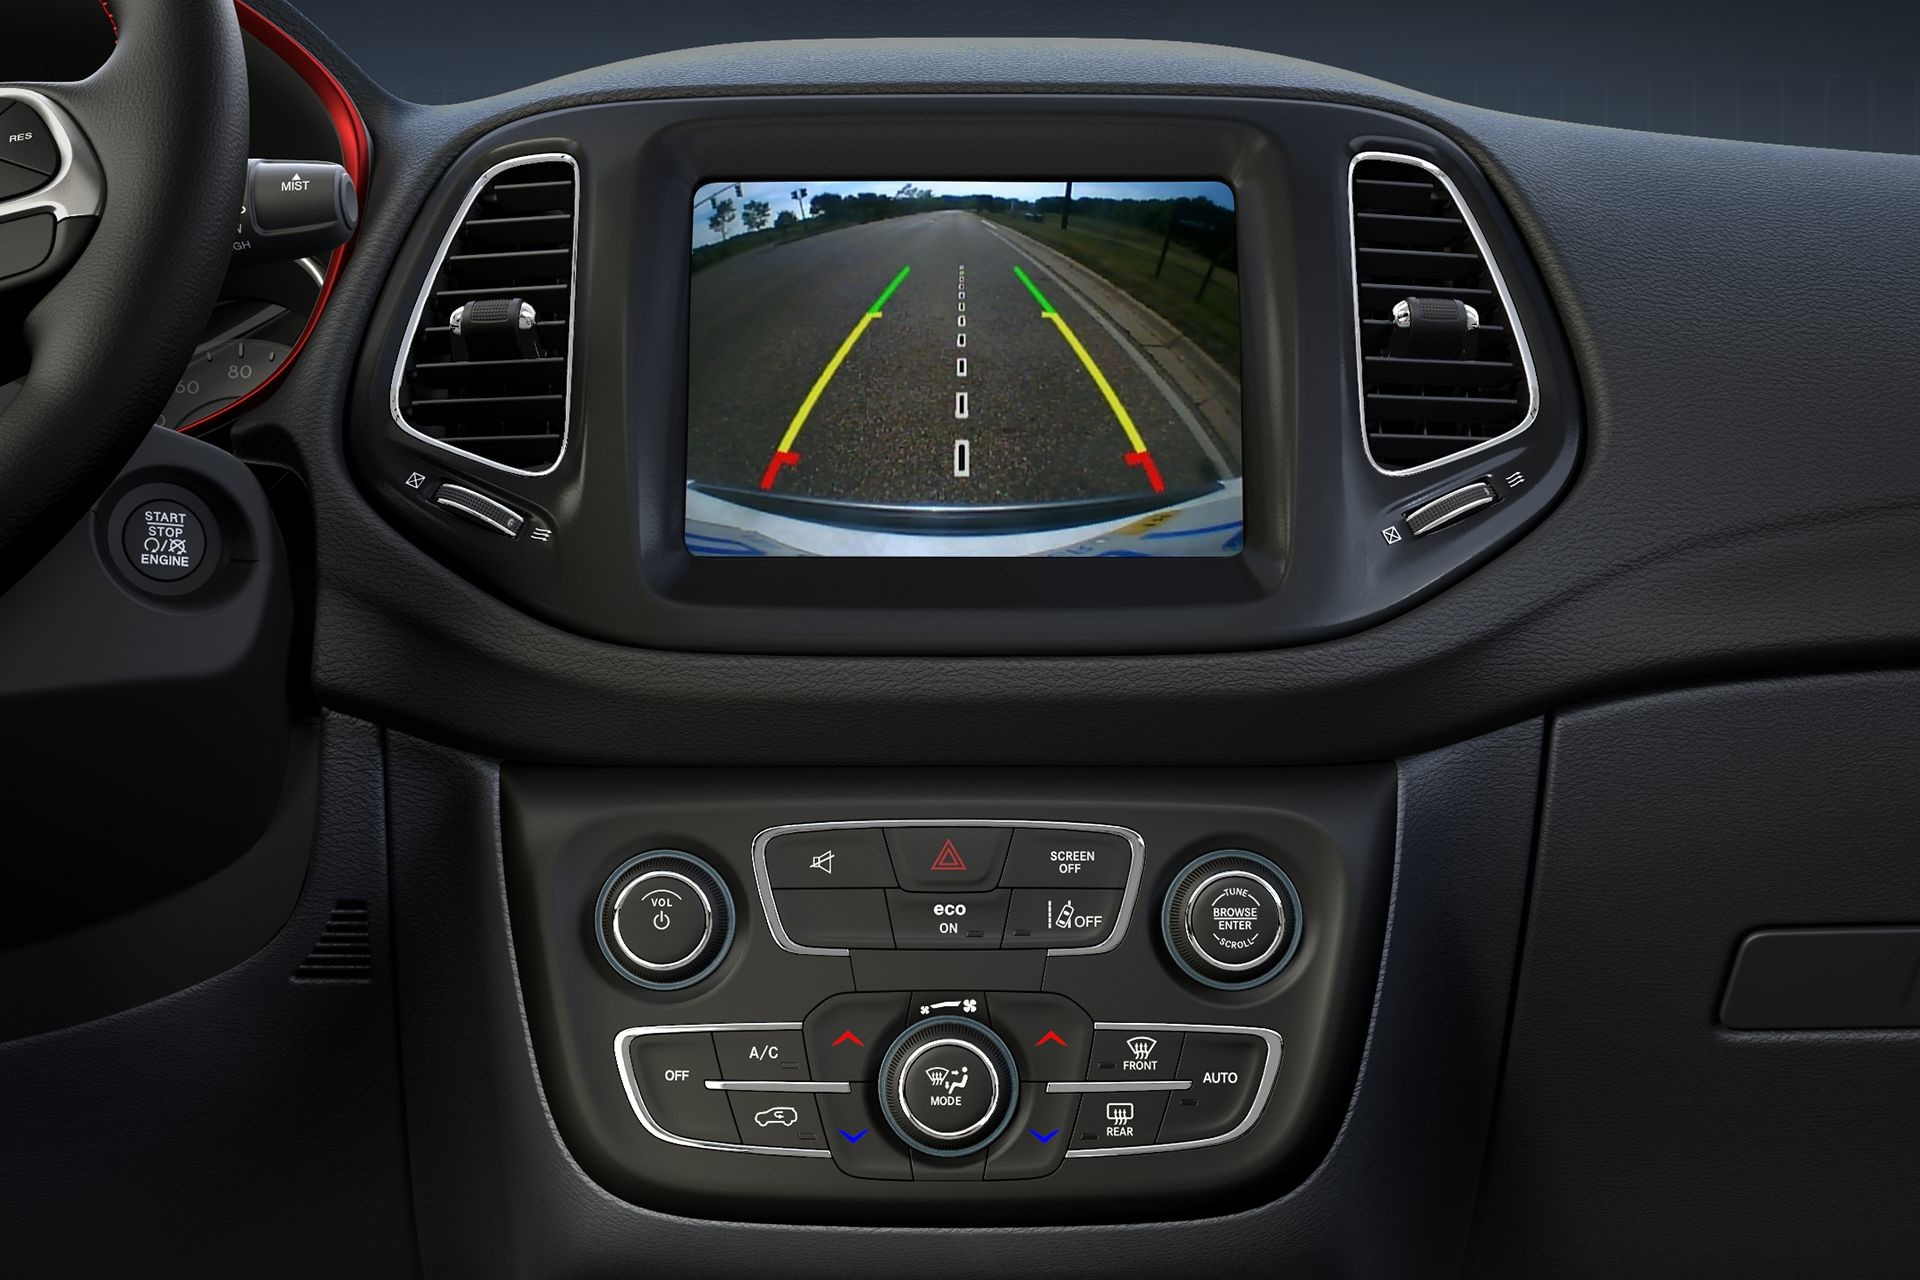 2019 Jeep Compass back-up camera screen